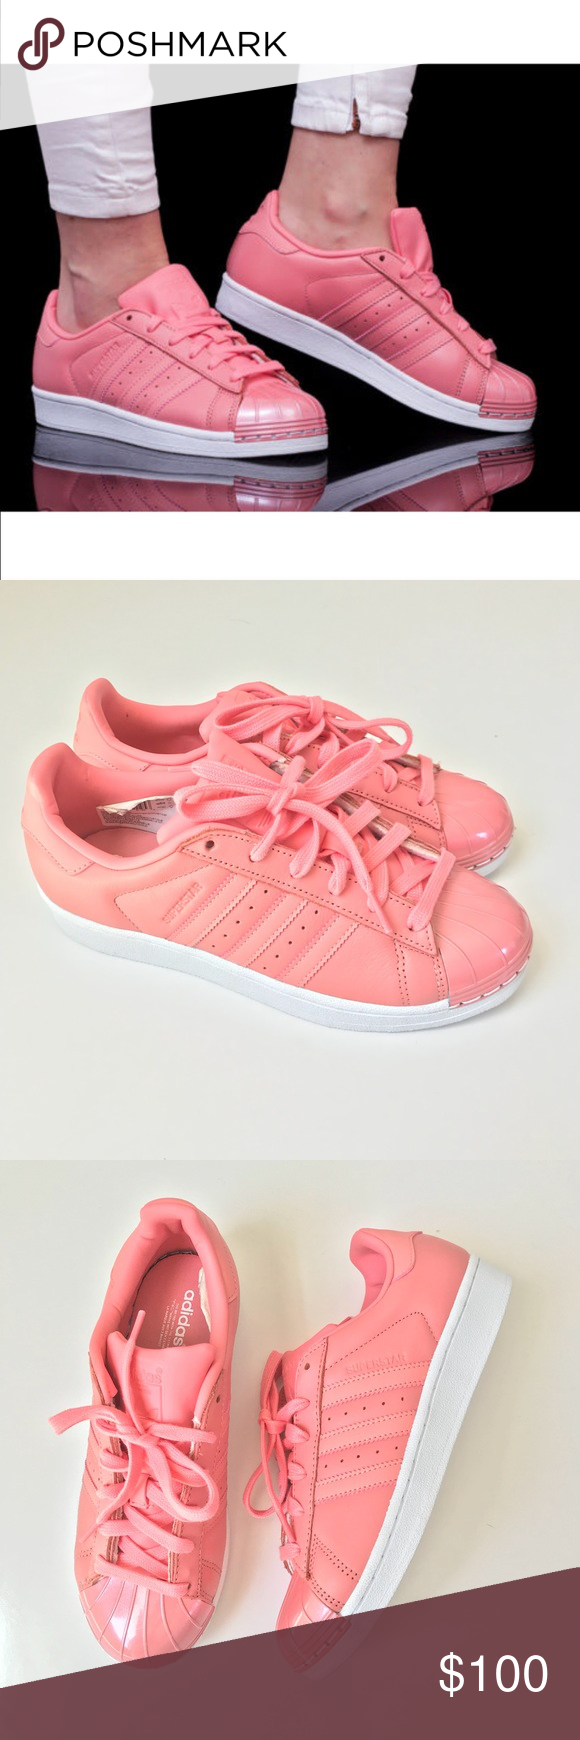 430bc97da63 Adidas Originals Superstar Metal Toe Rose Pink 7 Adidas Originals Superstar  Metal Toe Tactile Rose Pink Size 7 Style BY9750 New without tags or box has  been ...